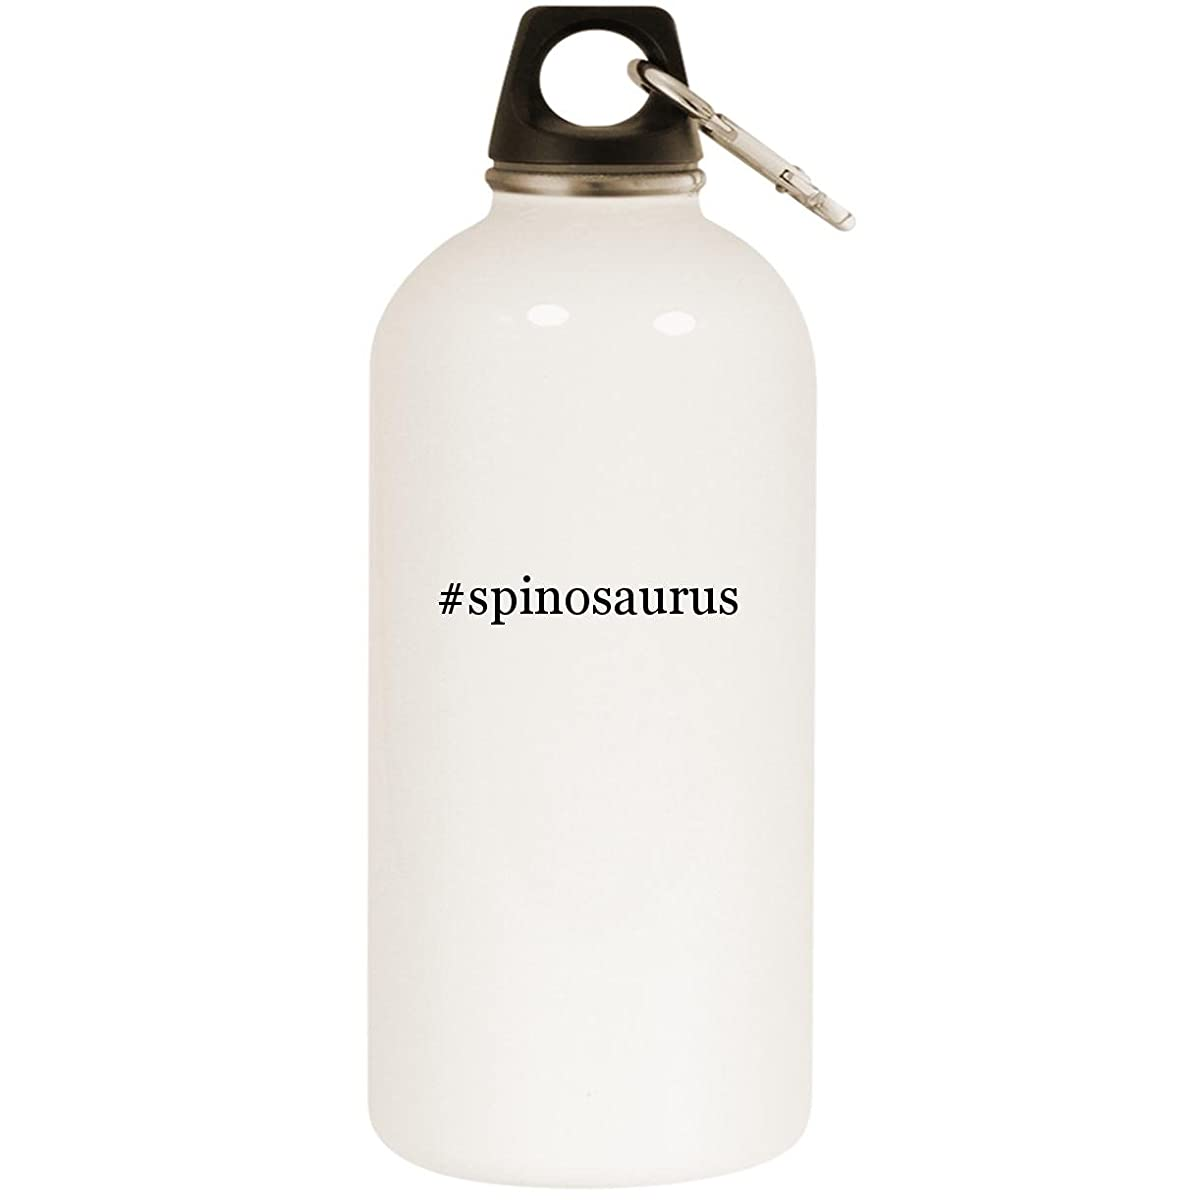 Molandra Products #Spinosaurus - White Hashtag 20oz Stainless Steel Water Bottle with Carabiner